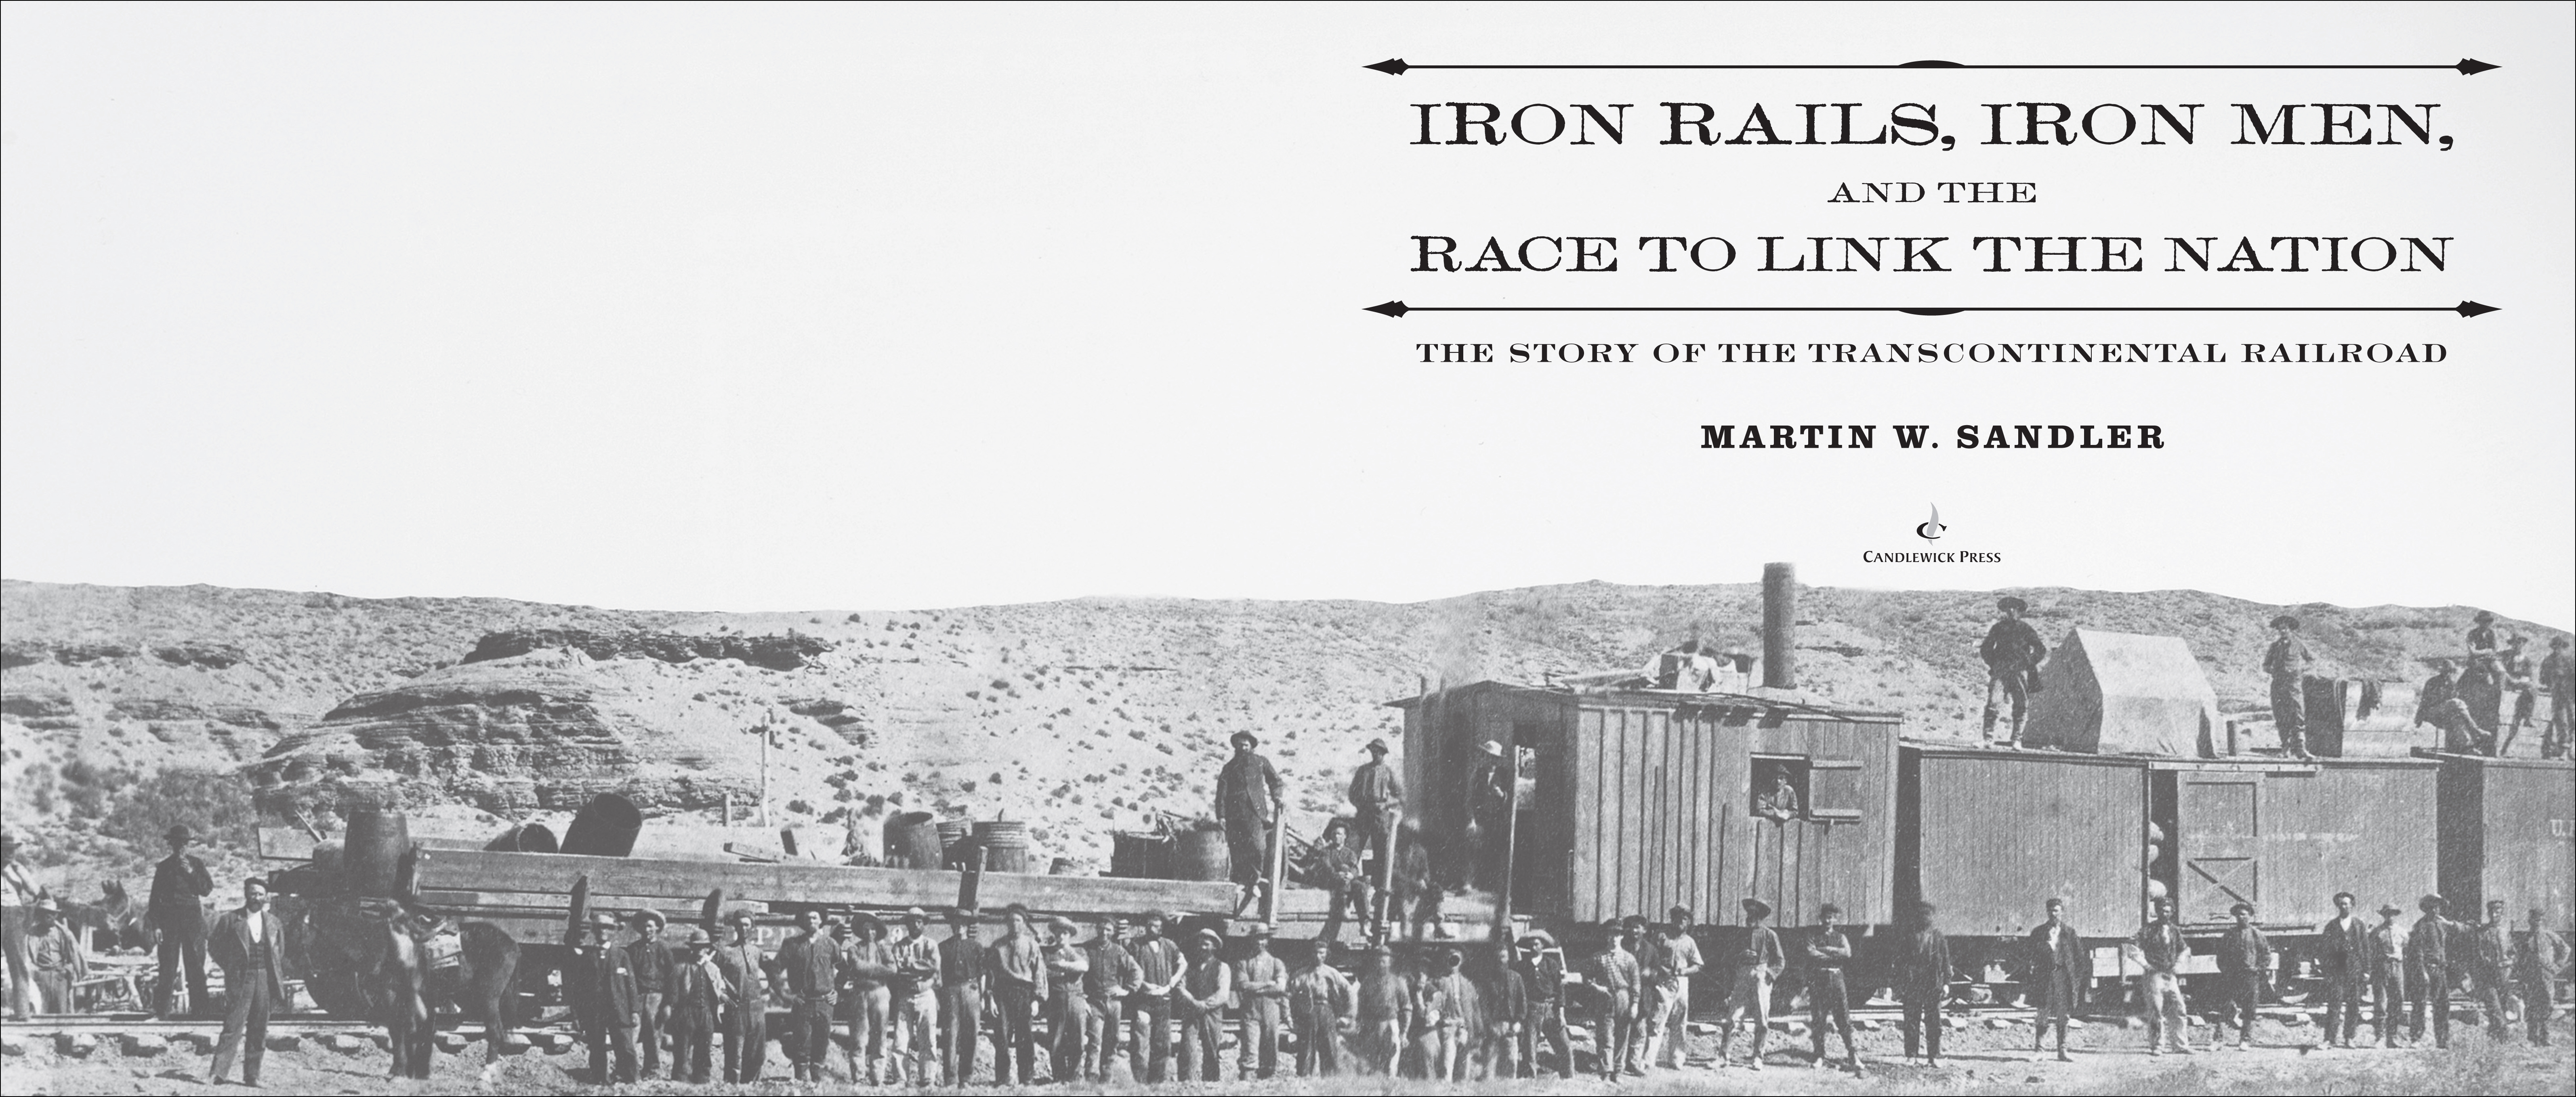 Title spread for IRON RAILS, IRON MEN, AND THE RACE TO LINK THE NATION